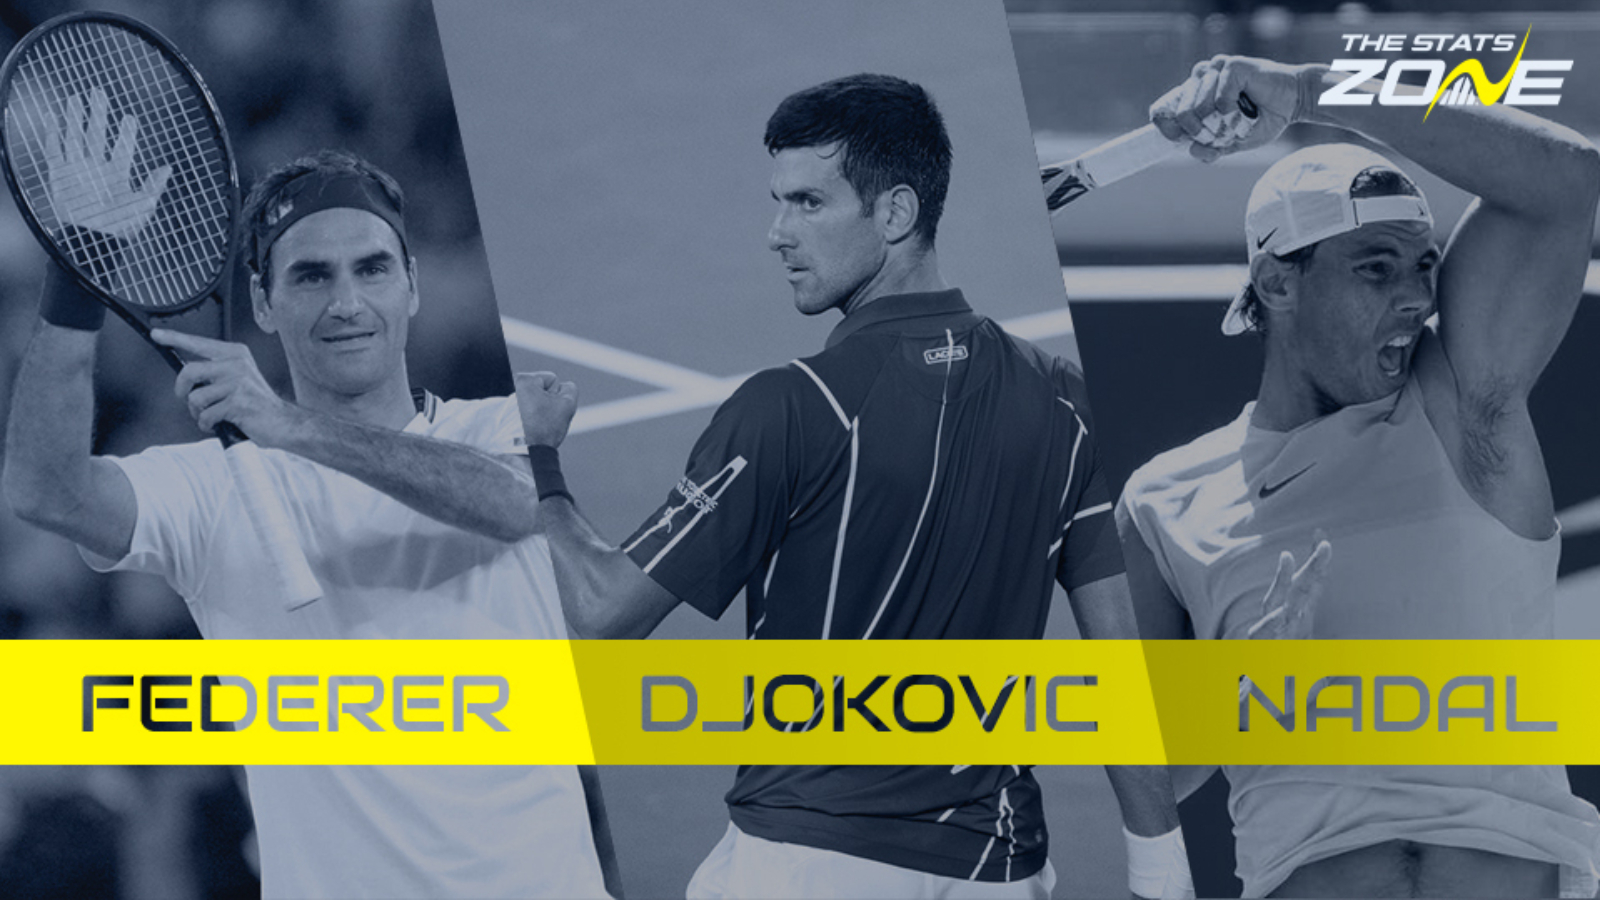 Federer Nadal Or Djokovic Who Was The Most Dominant In Their Peak The Stats Zone